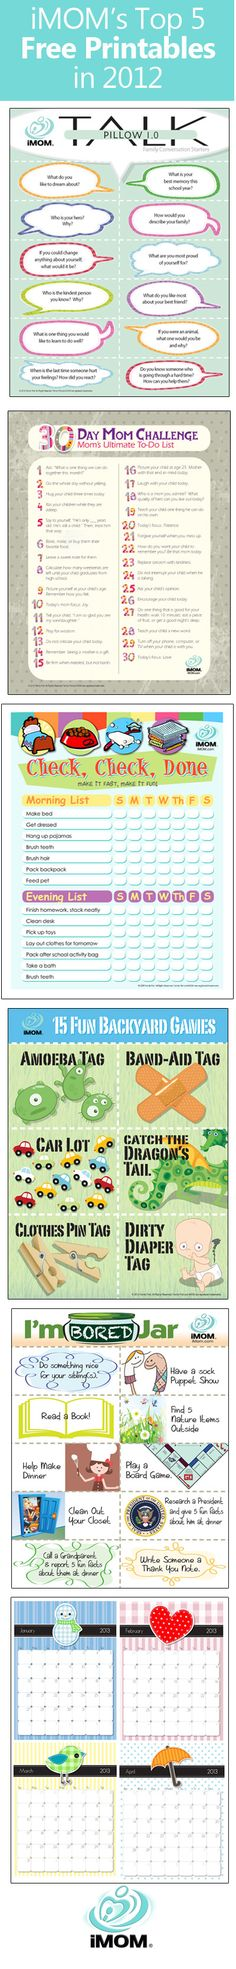 iMOM's Top 5 Free Printables in 2012  iMOM has over 200 printables to help moms!  http://imom.com/tools/